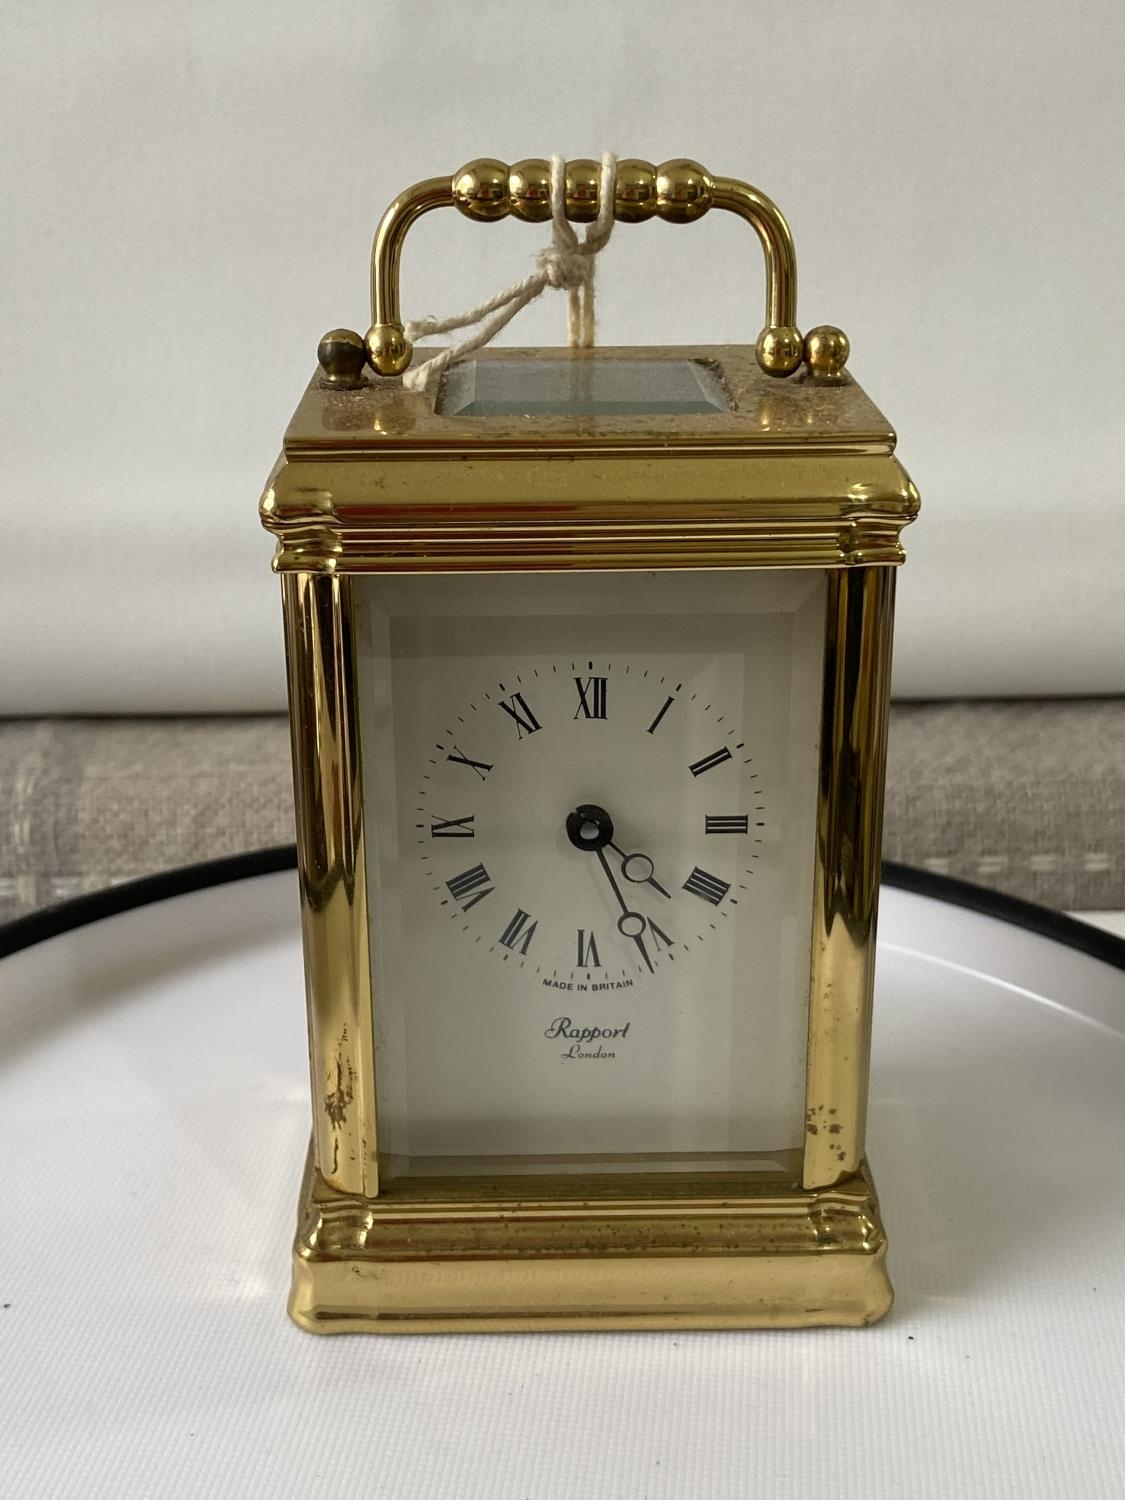 Antique heavy brass carriage clock [Rapport London] [MVT No 1800] in a working condition and with - Image 2 of 12